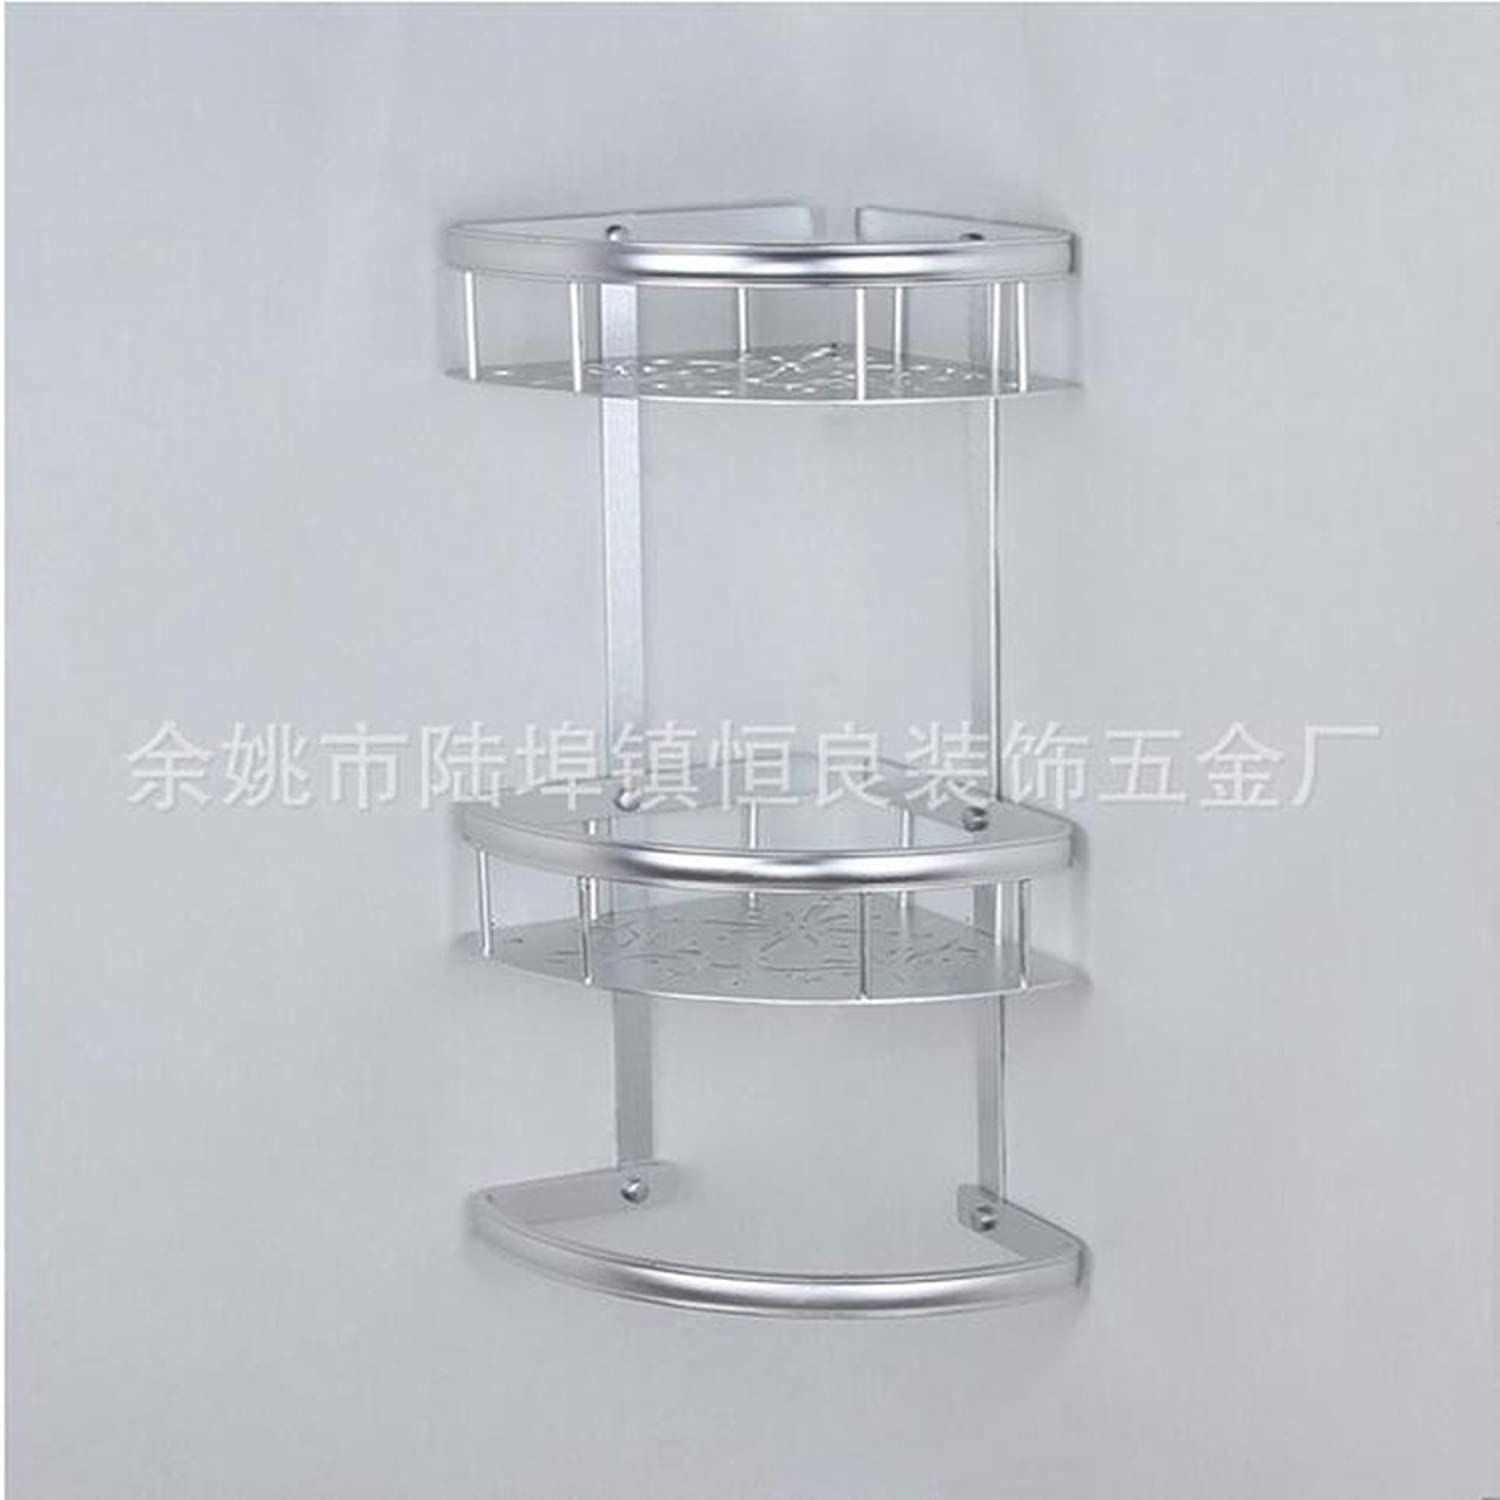 Three-tier bathroom shelf kitchen hardware multi-functional rack bathroom corner shelf wall mount triangle shelf basket